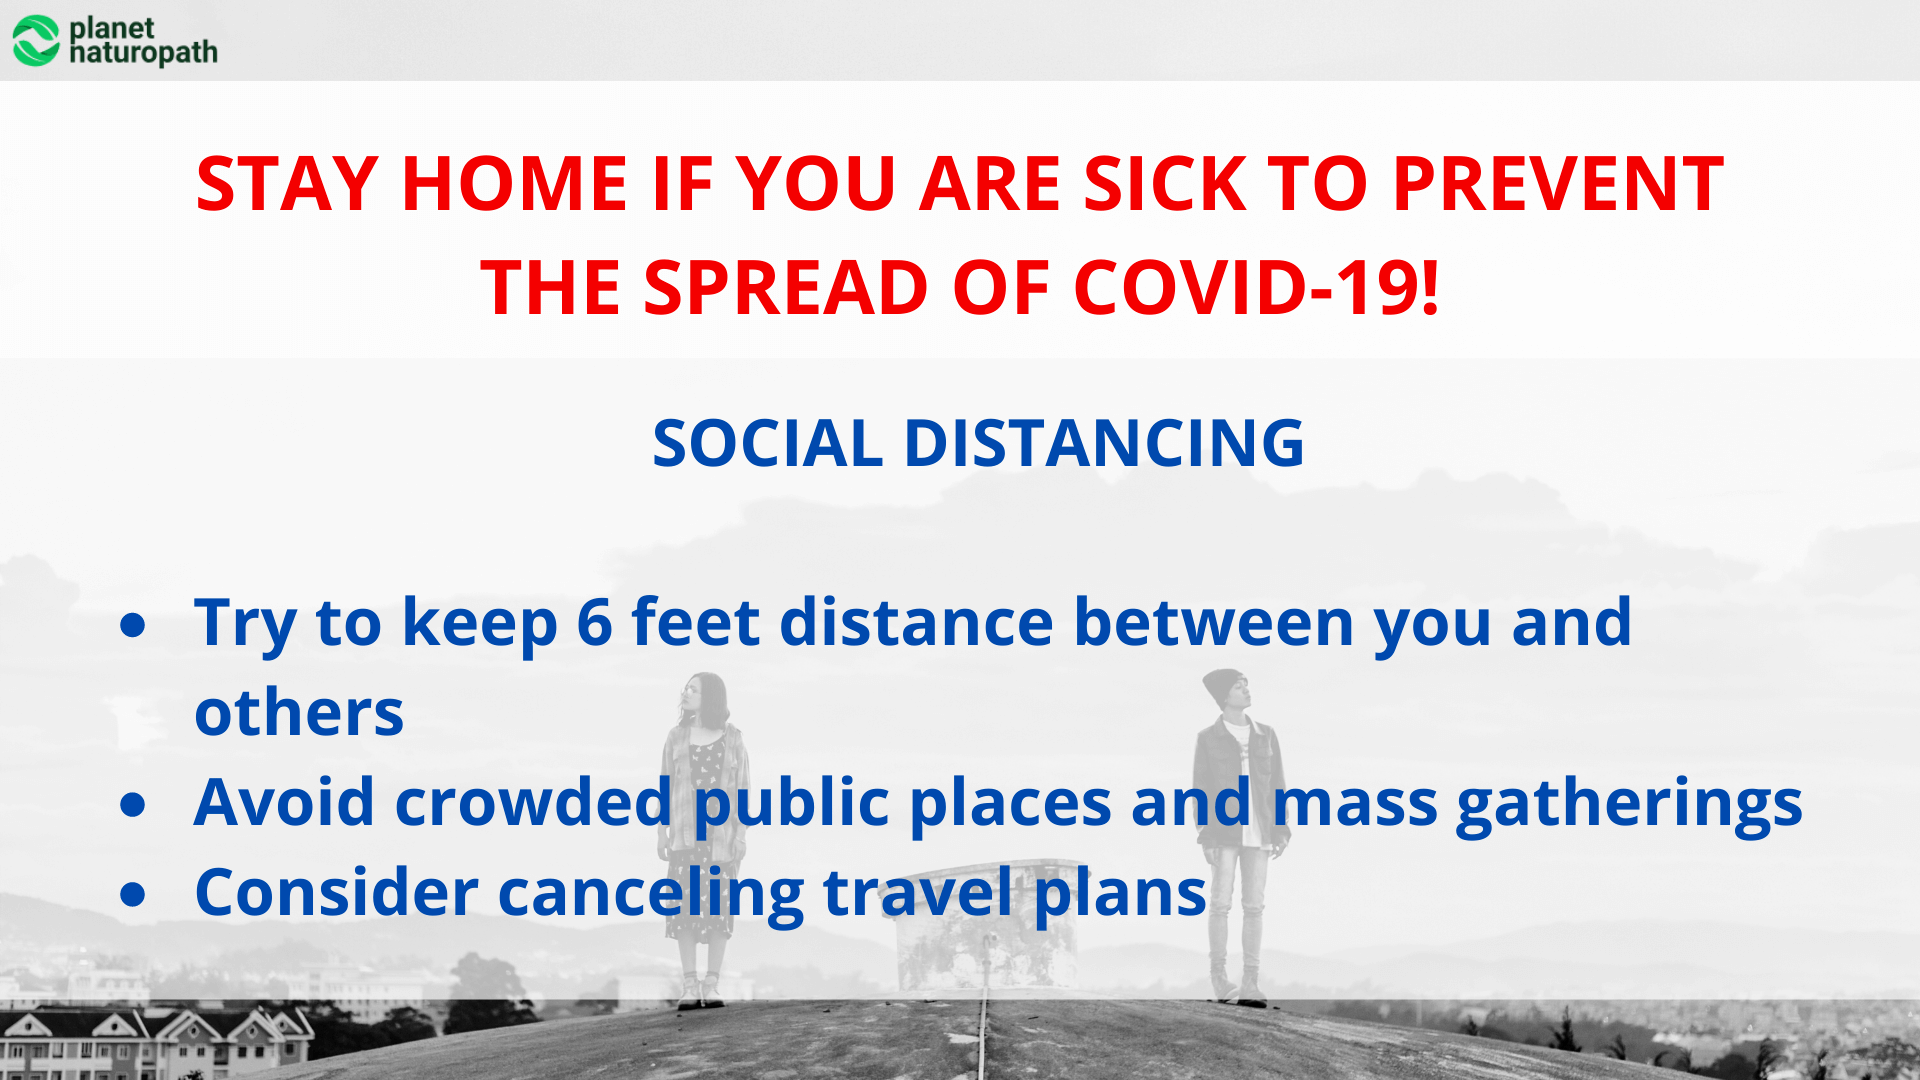 Stay-home-if-you-are-sick-to-prevent-the-spread-of-COVID-19